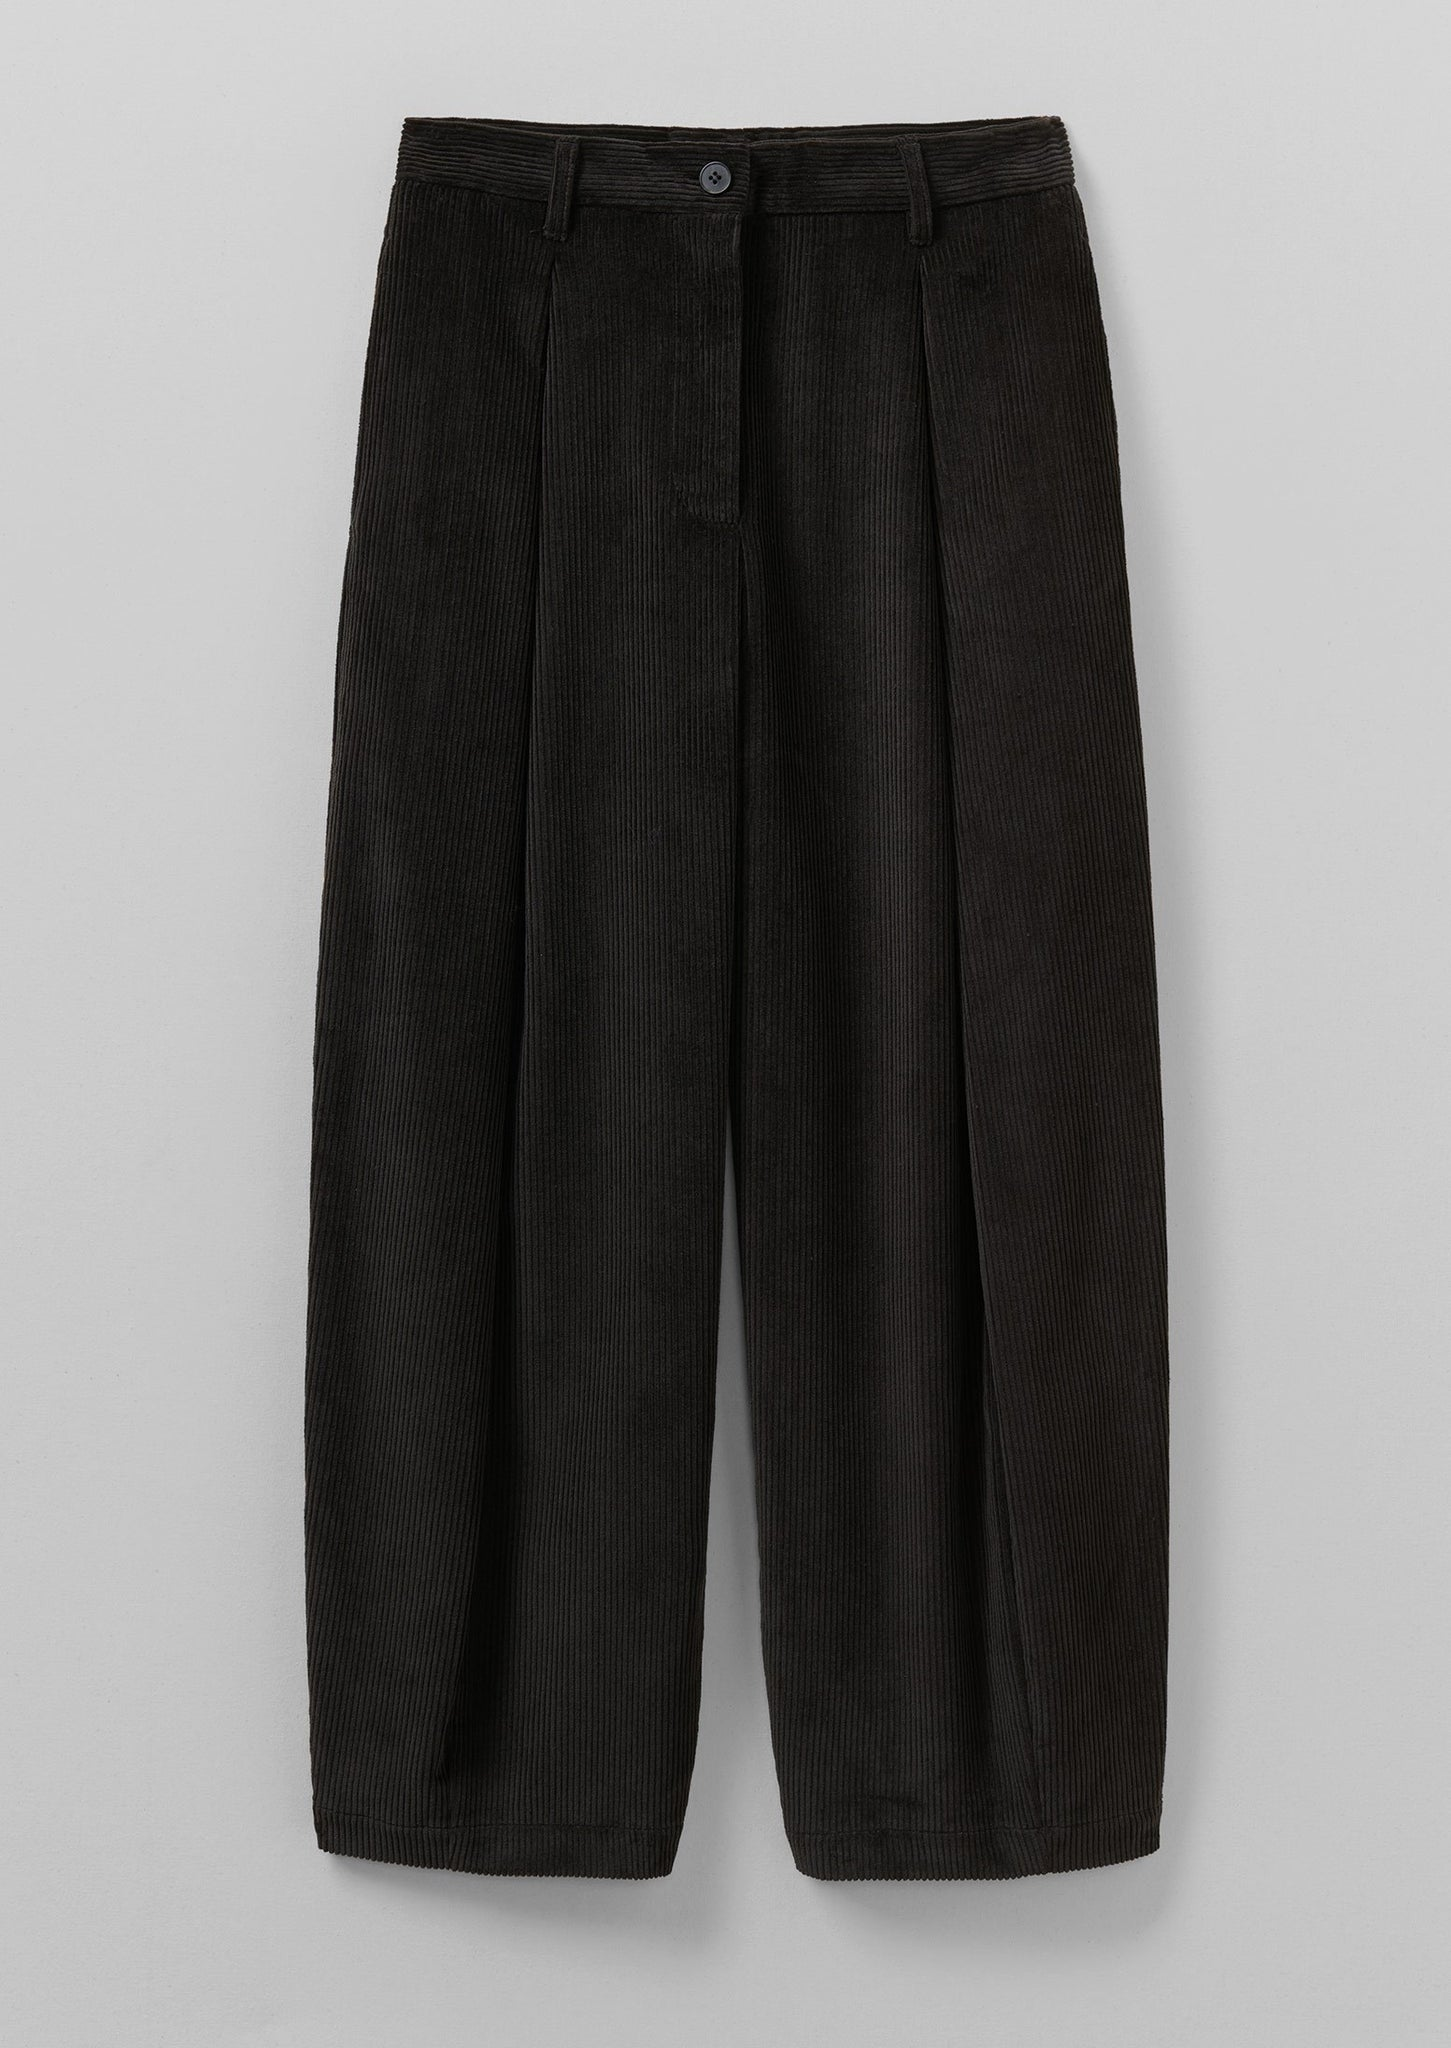 Cord Dart Trousers | Brown Slate